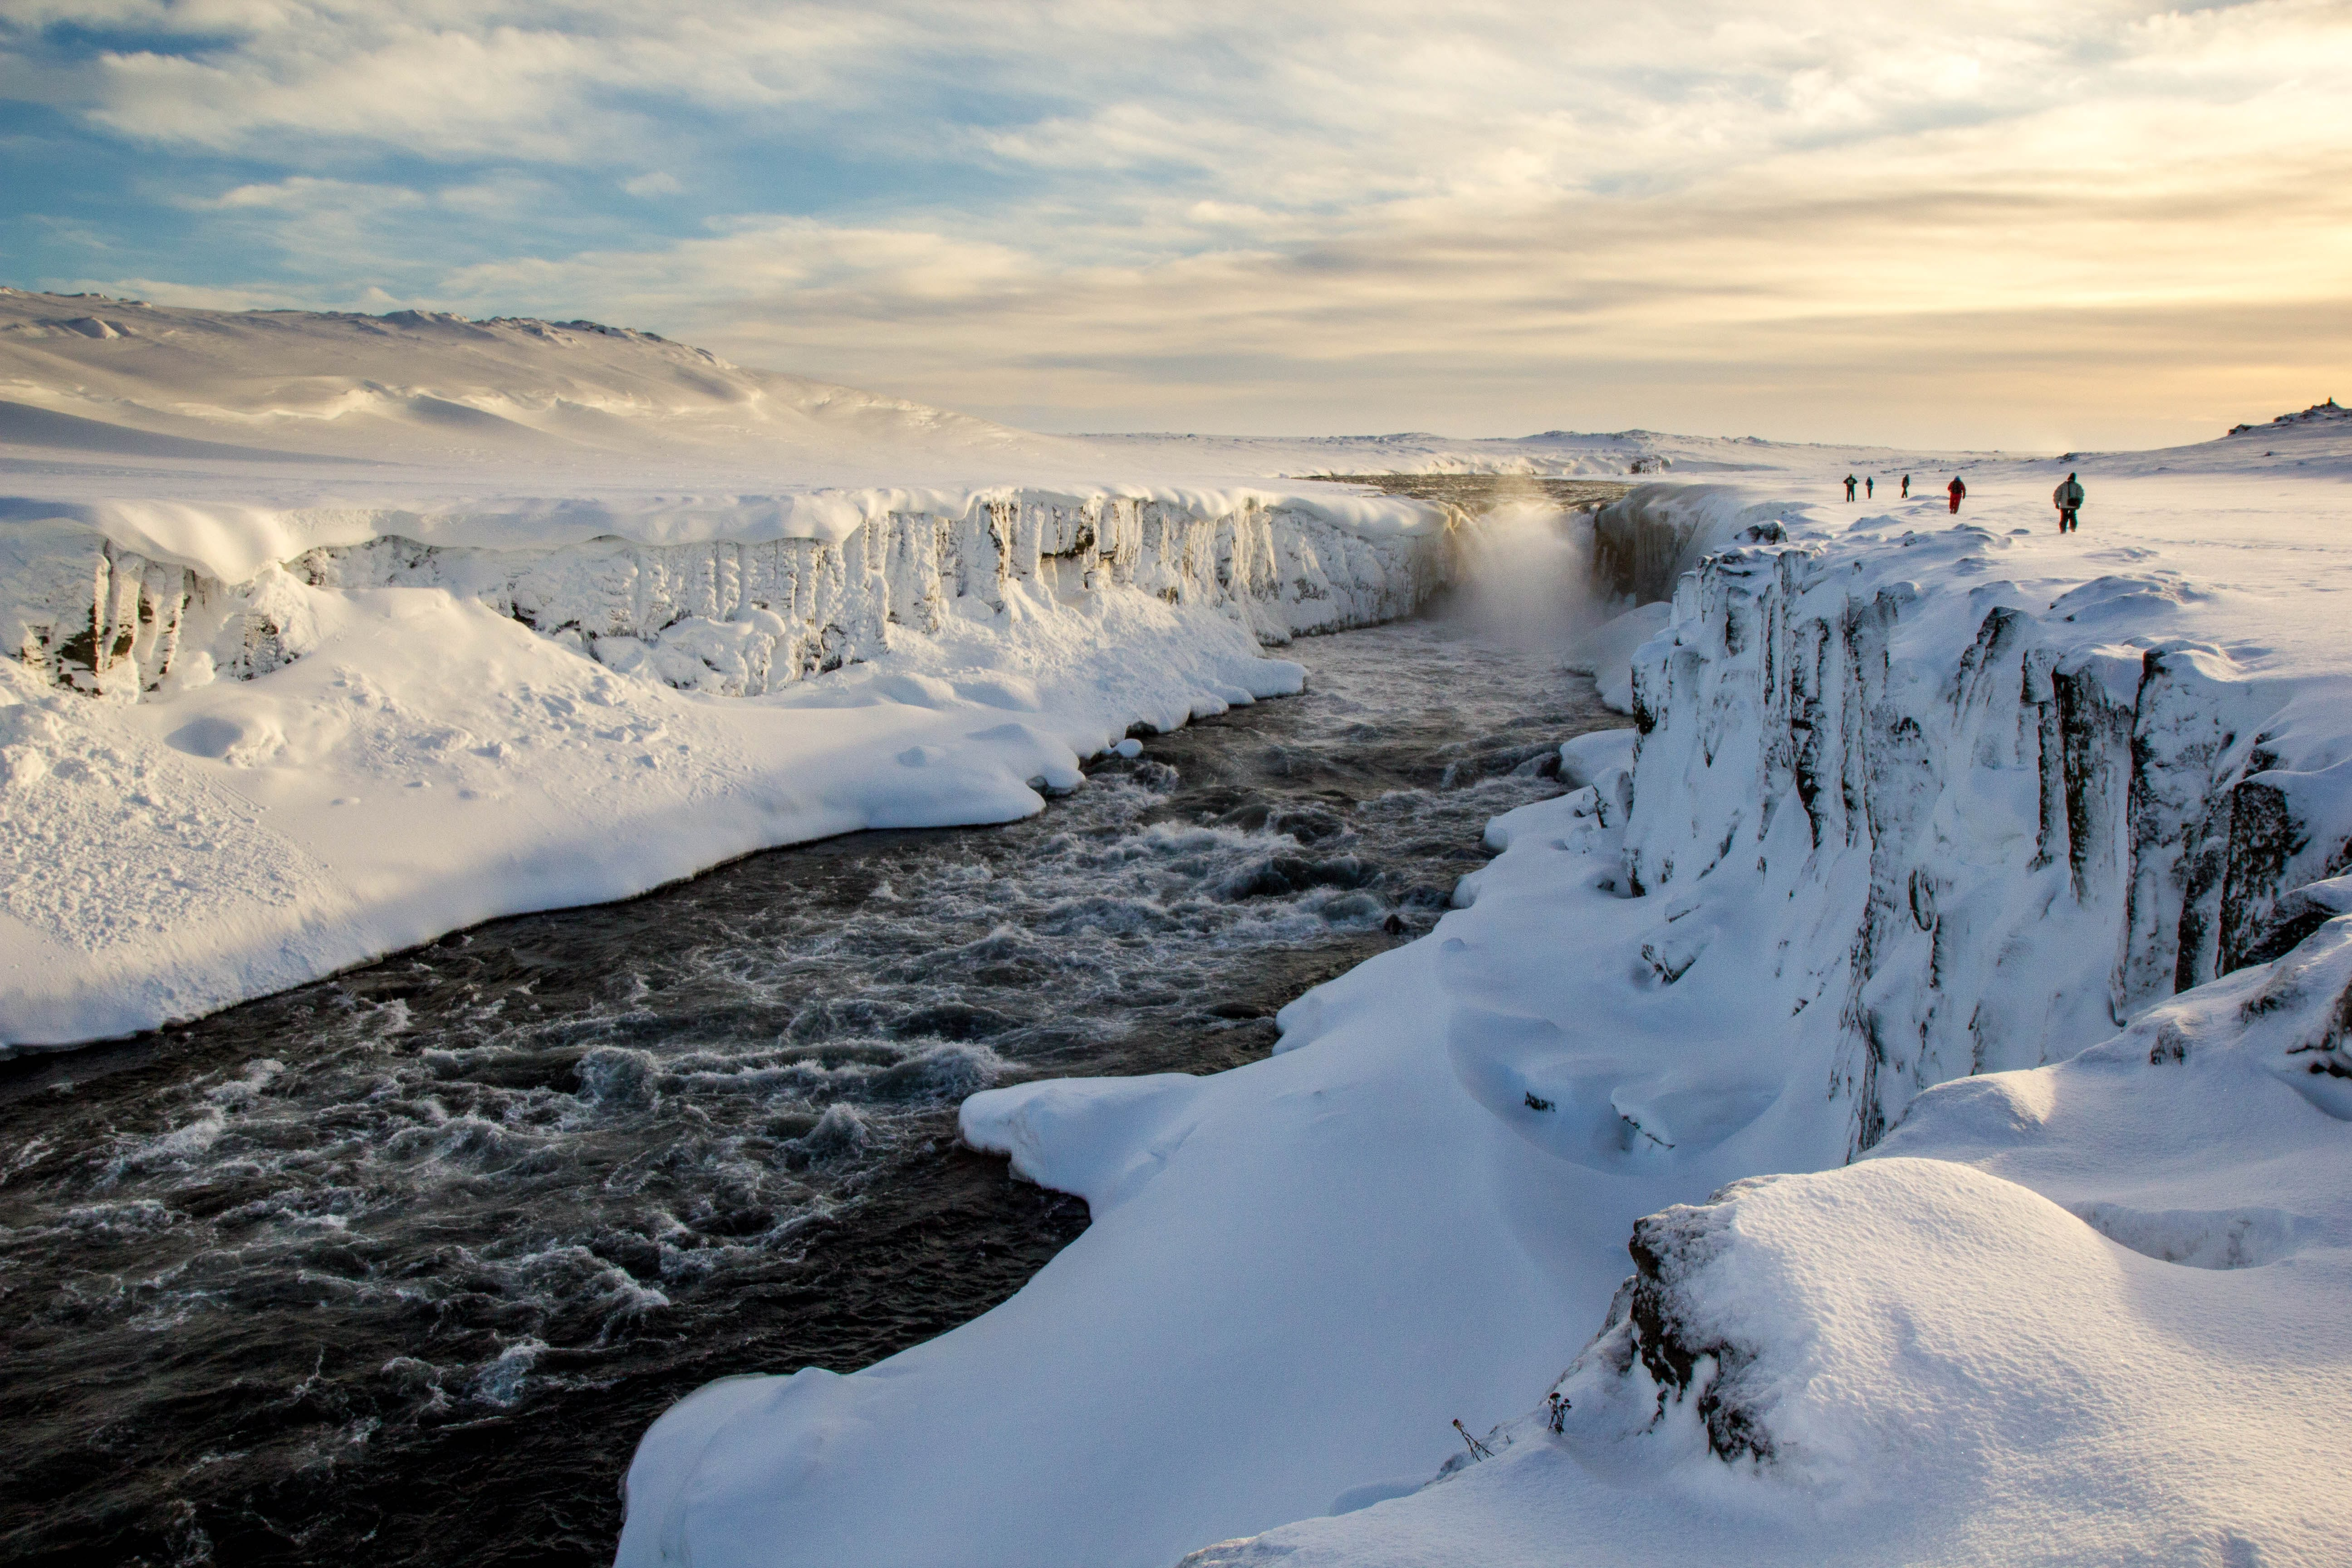 Dettifoss is a particularly stunning feature when blanketed in snow.